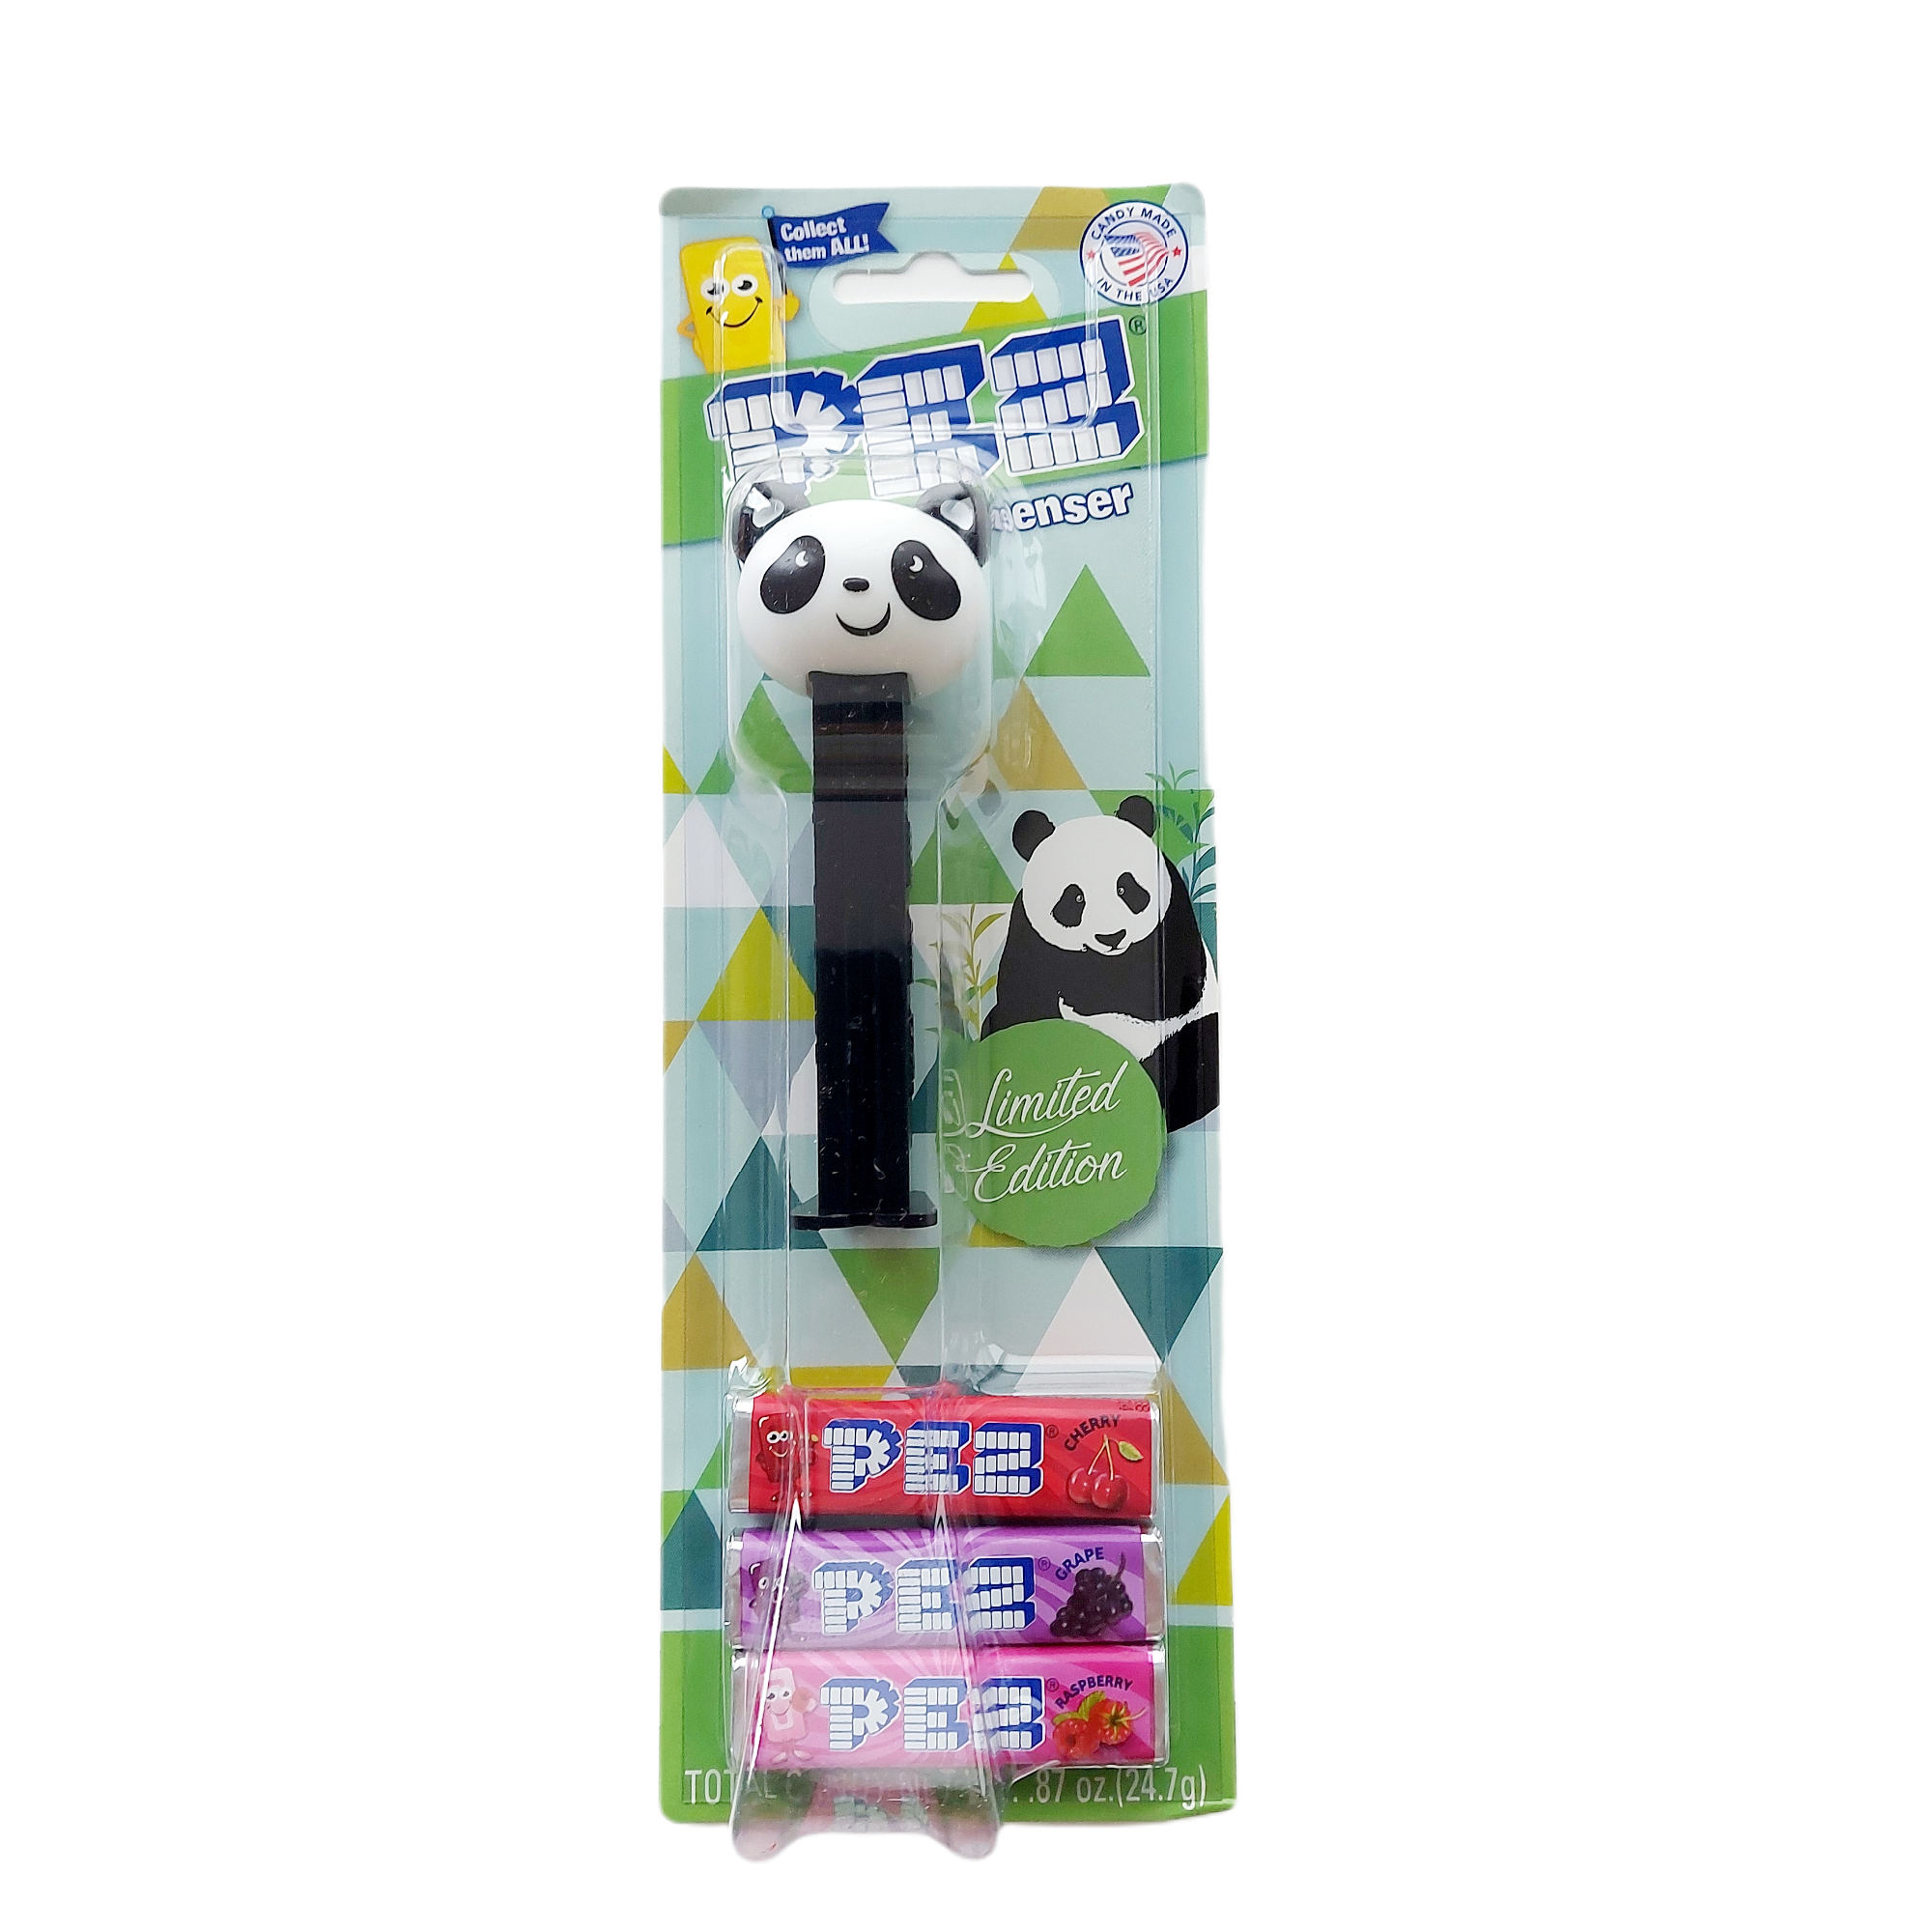 PEZ Panda - Limited Edition